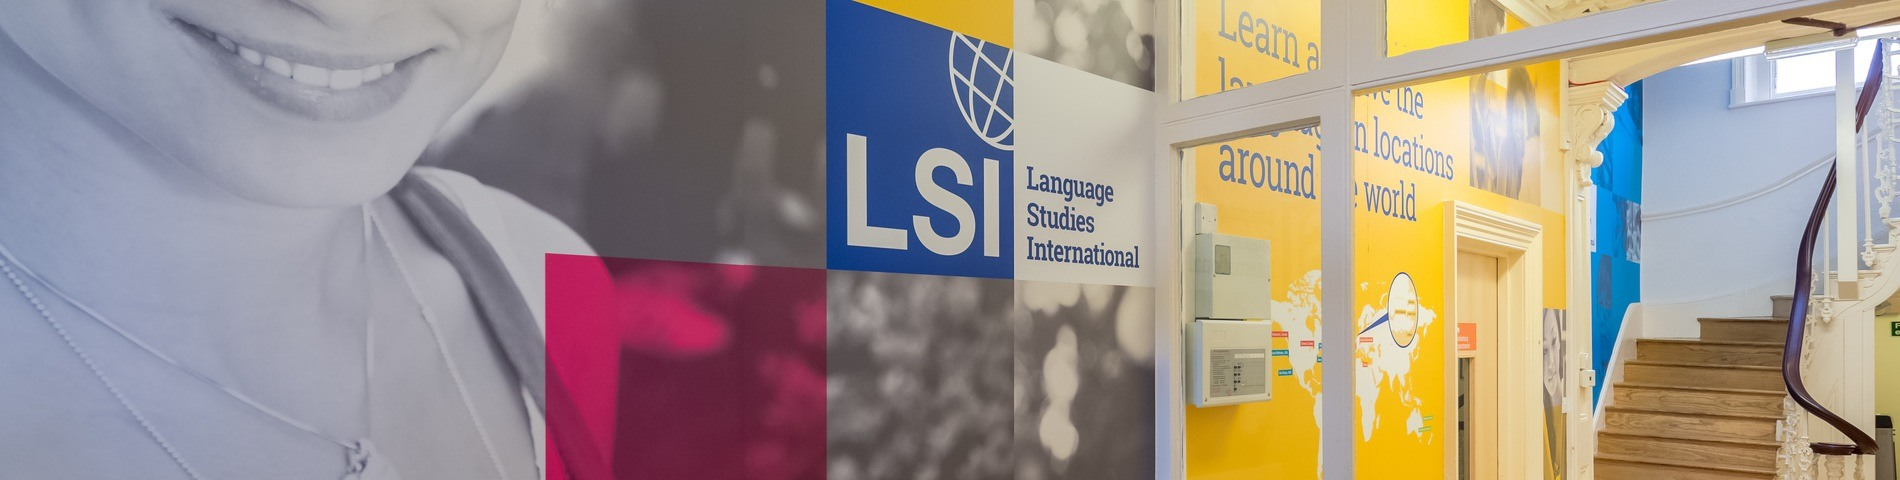 LSI - Language Studies International - Hampstead foto 1